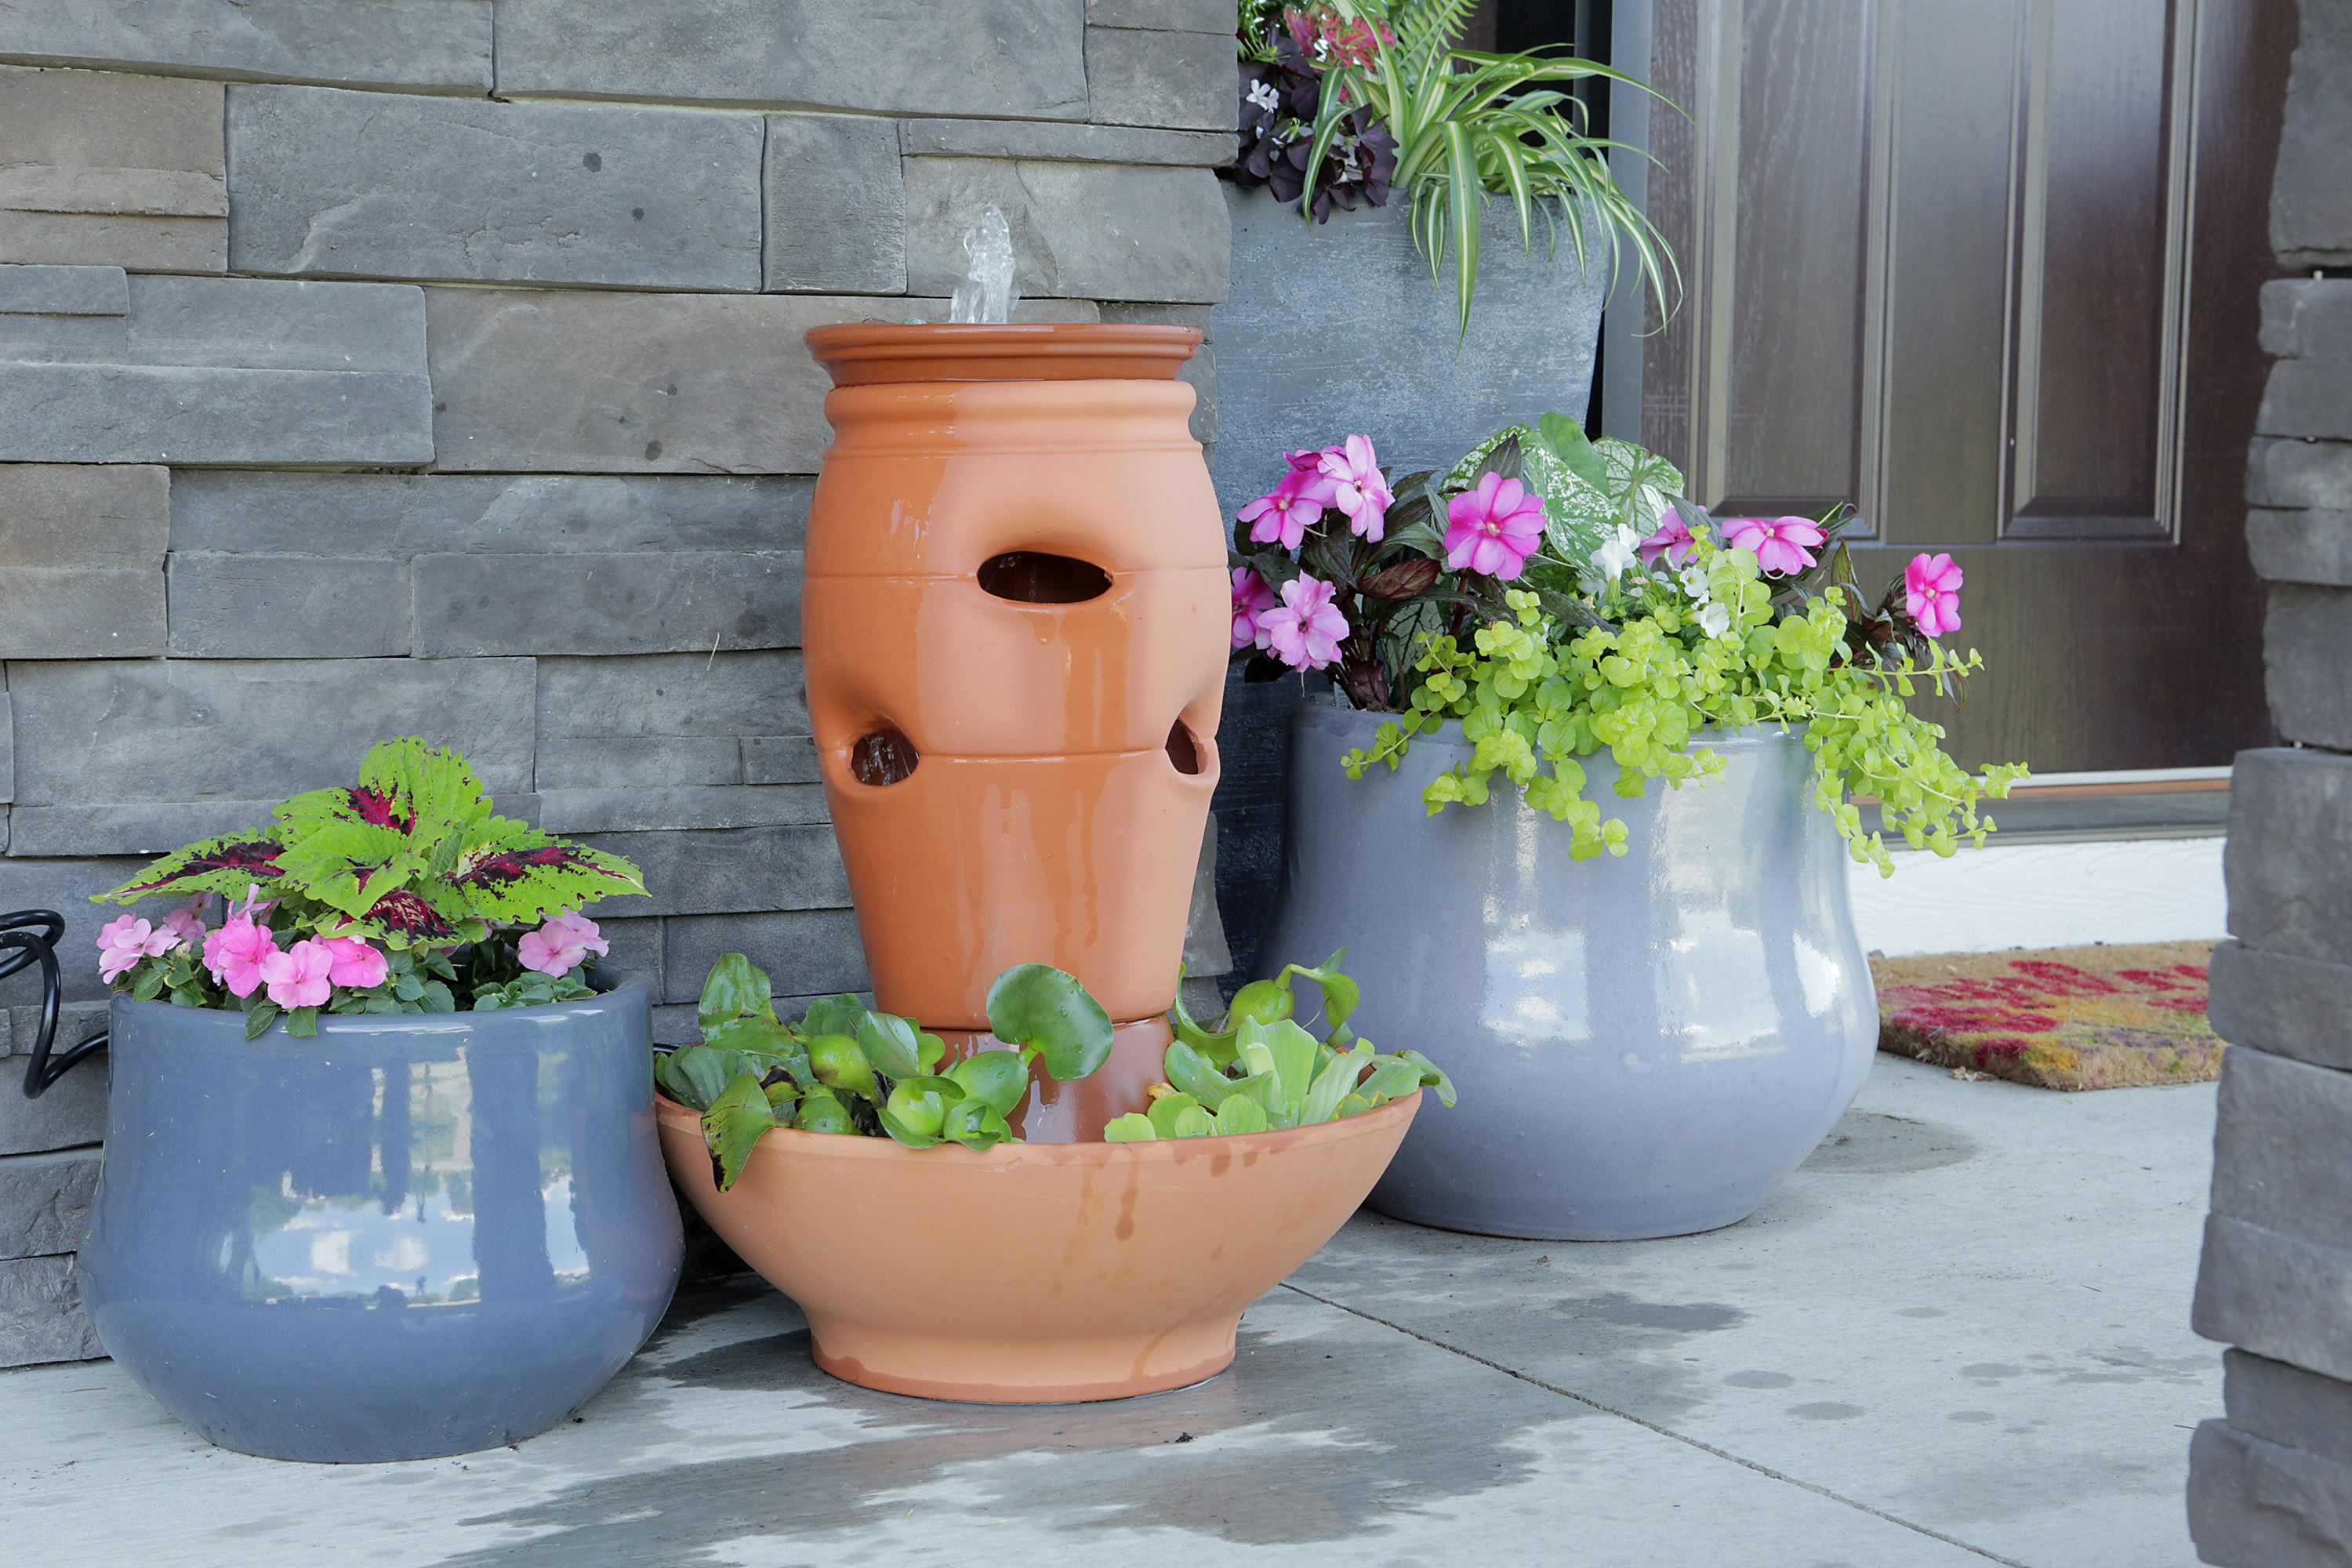 terra-cotta fountain front porch among potted plants